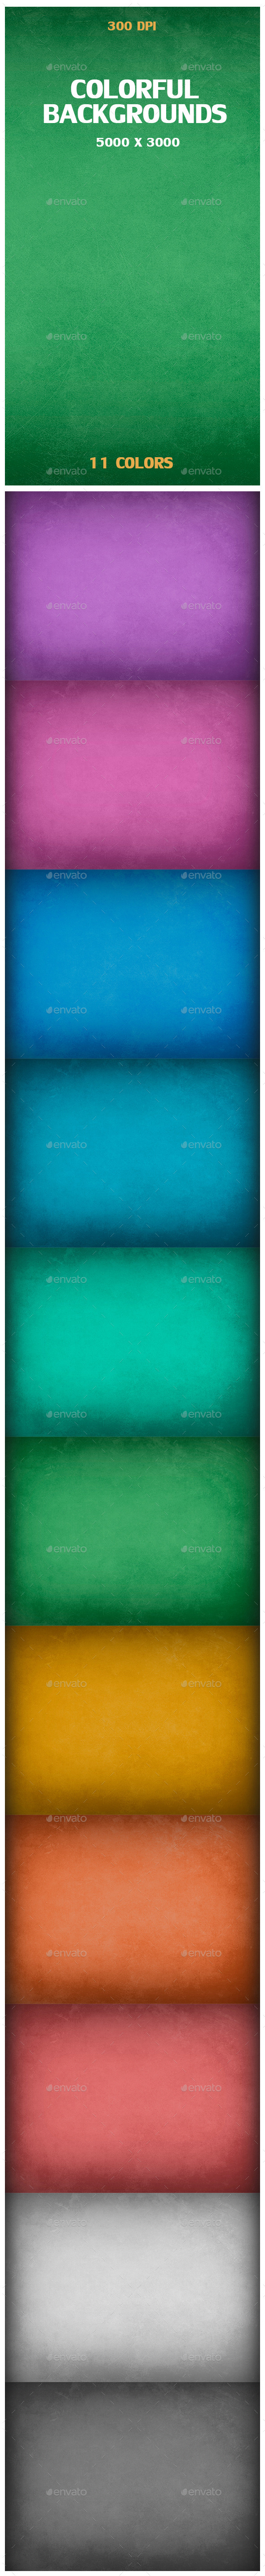 GraphicRiver 11 Textured Backgrounds 9495408